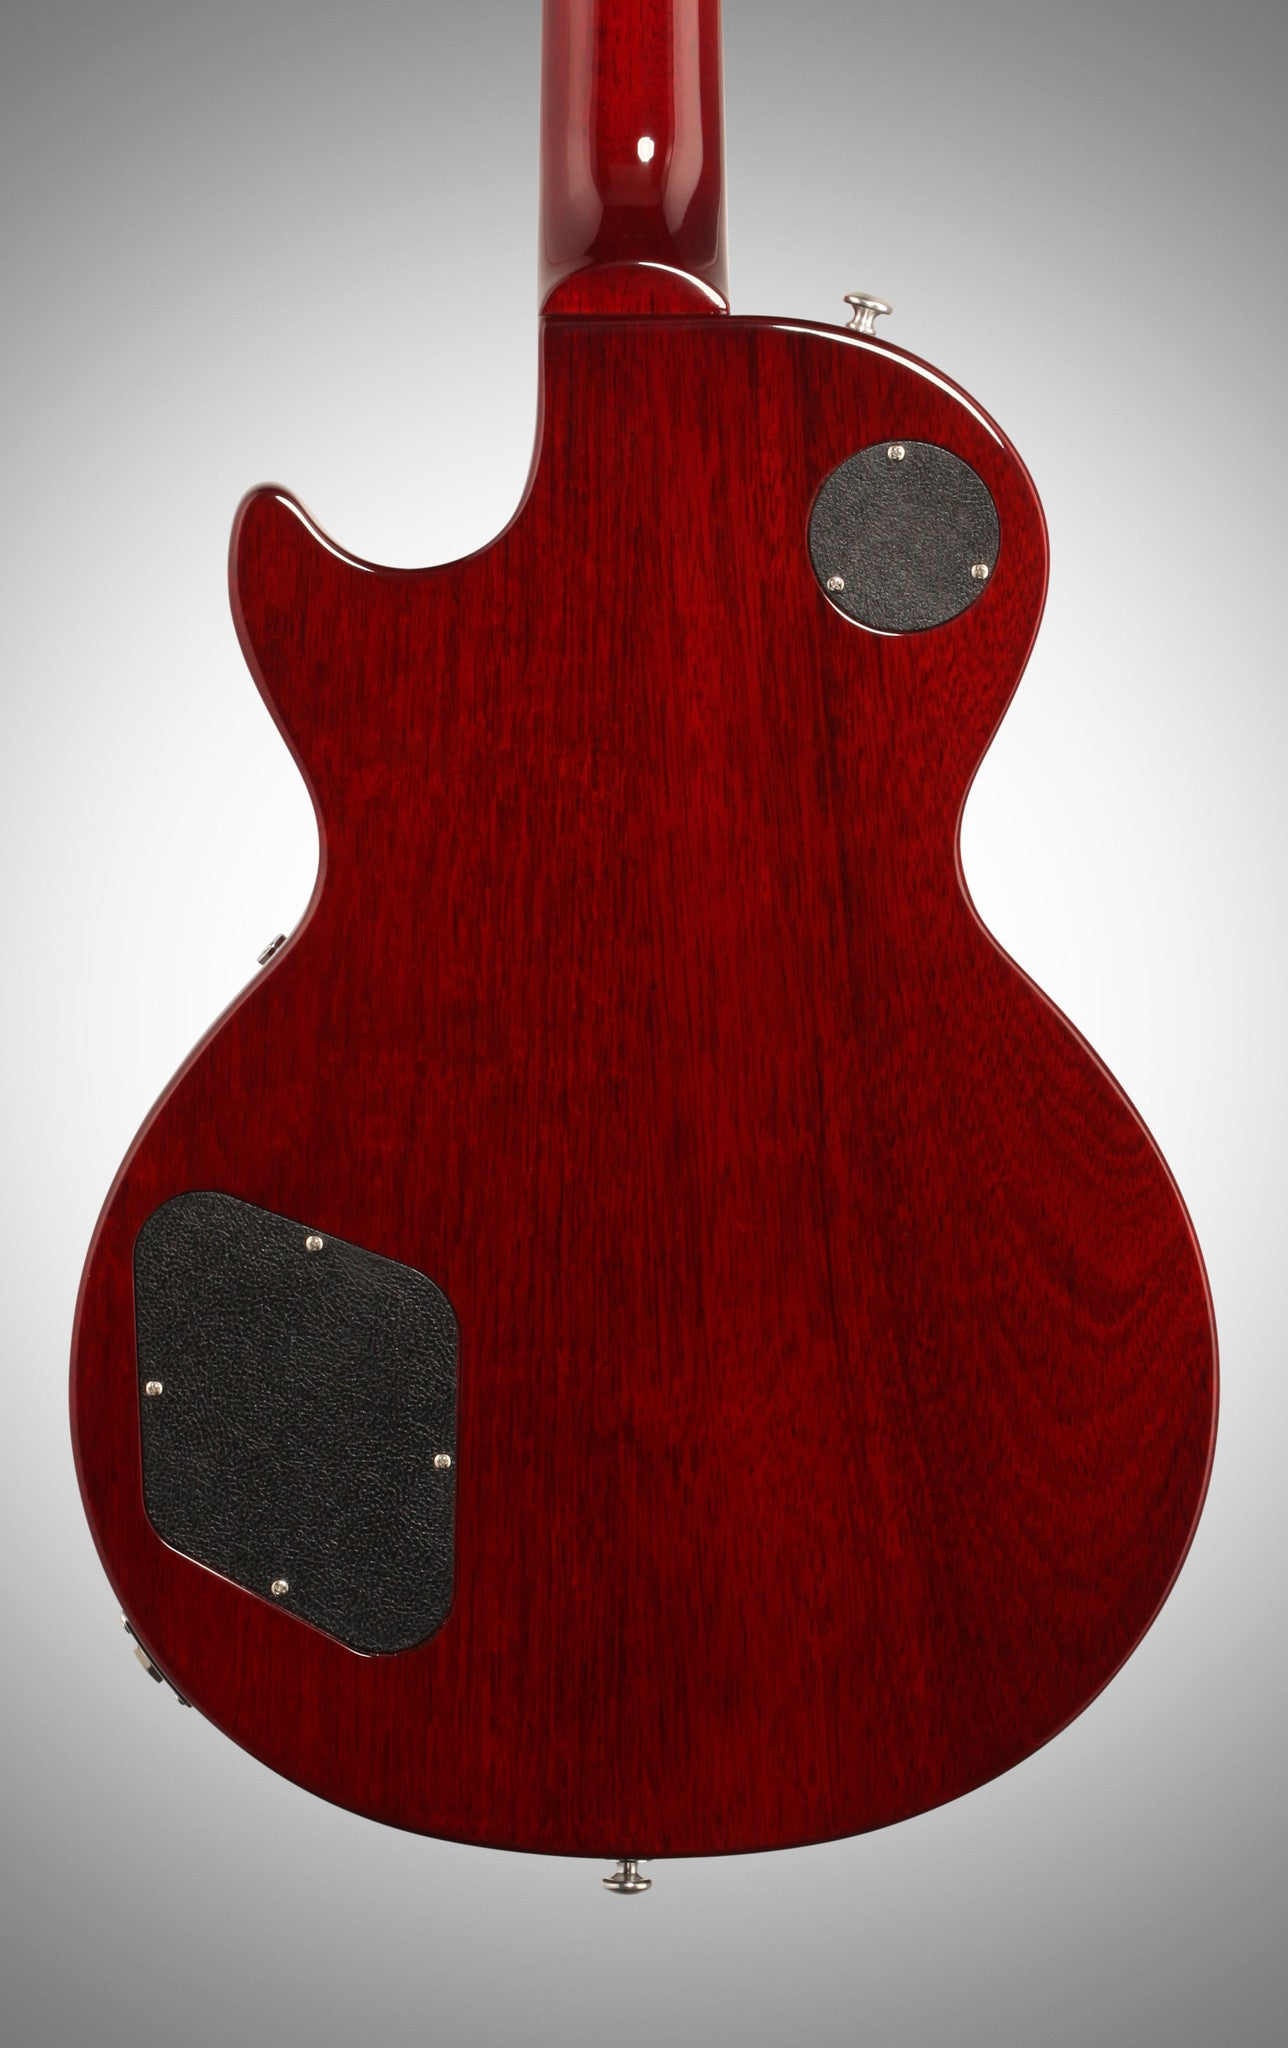 Gibson 2016 Les Paul Traditional Plus T Electric Guitar (with Case), Wine Red Gibson - HIENDGUITAR.COM